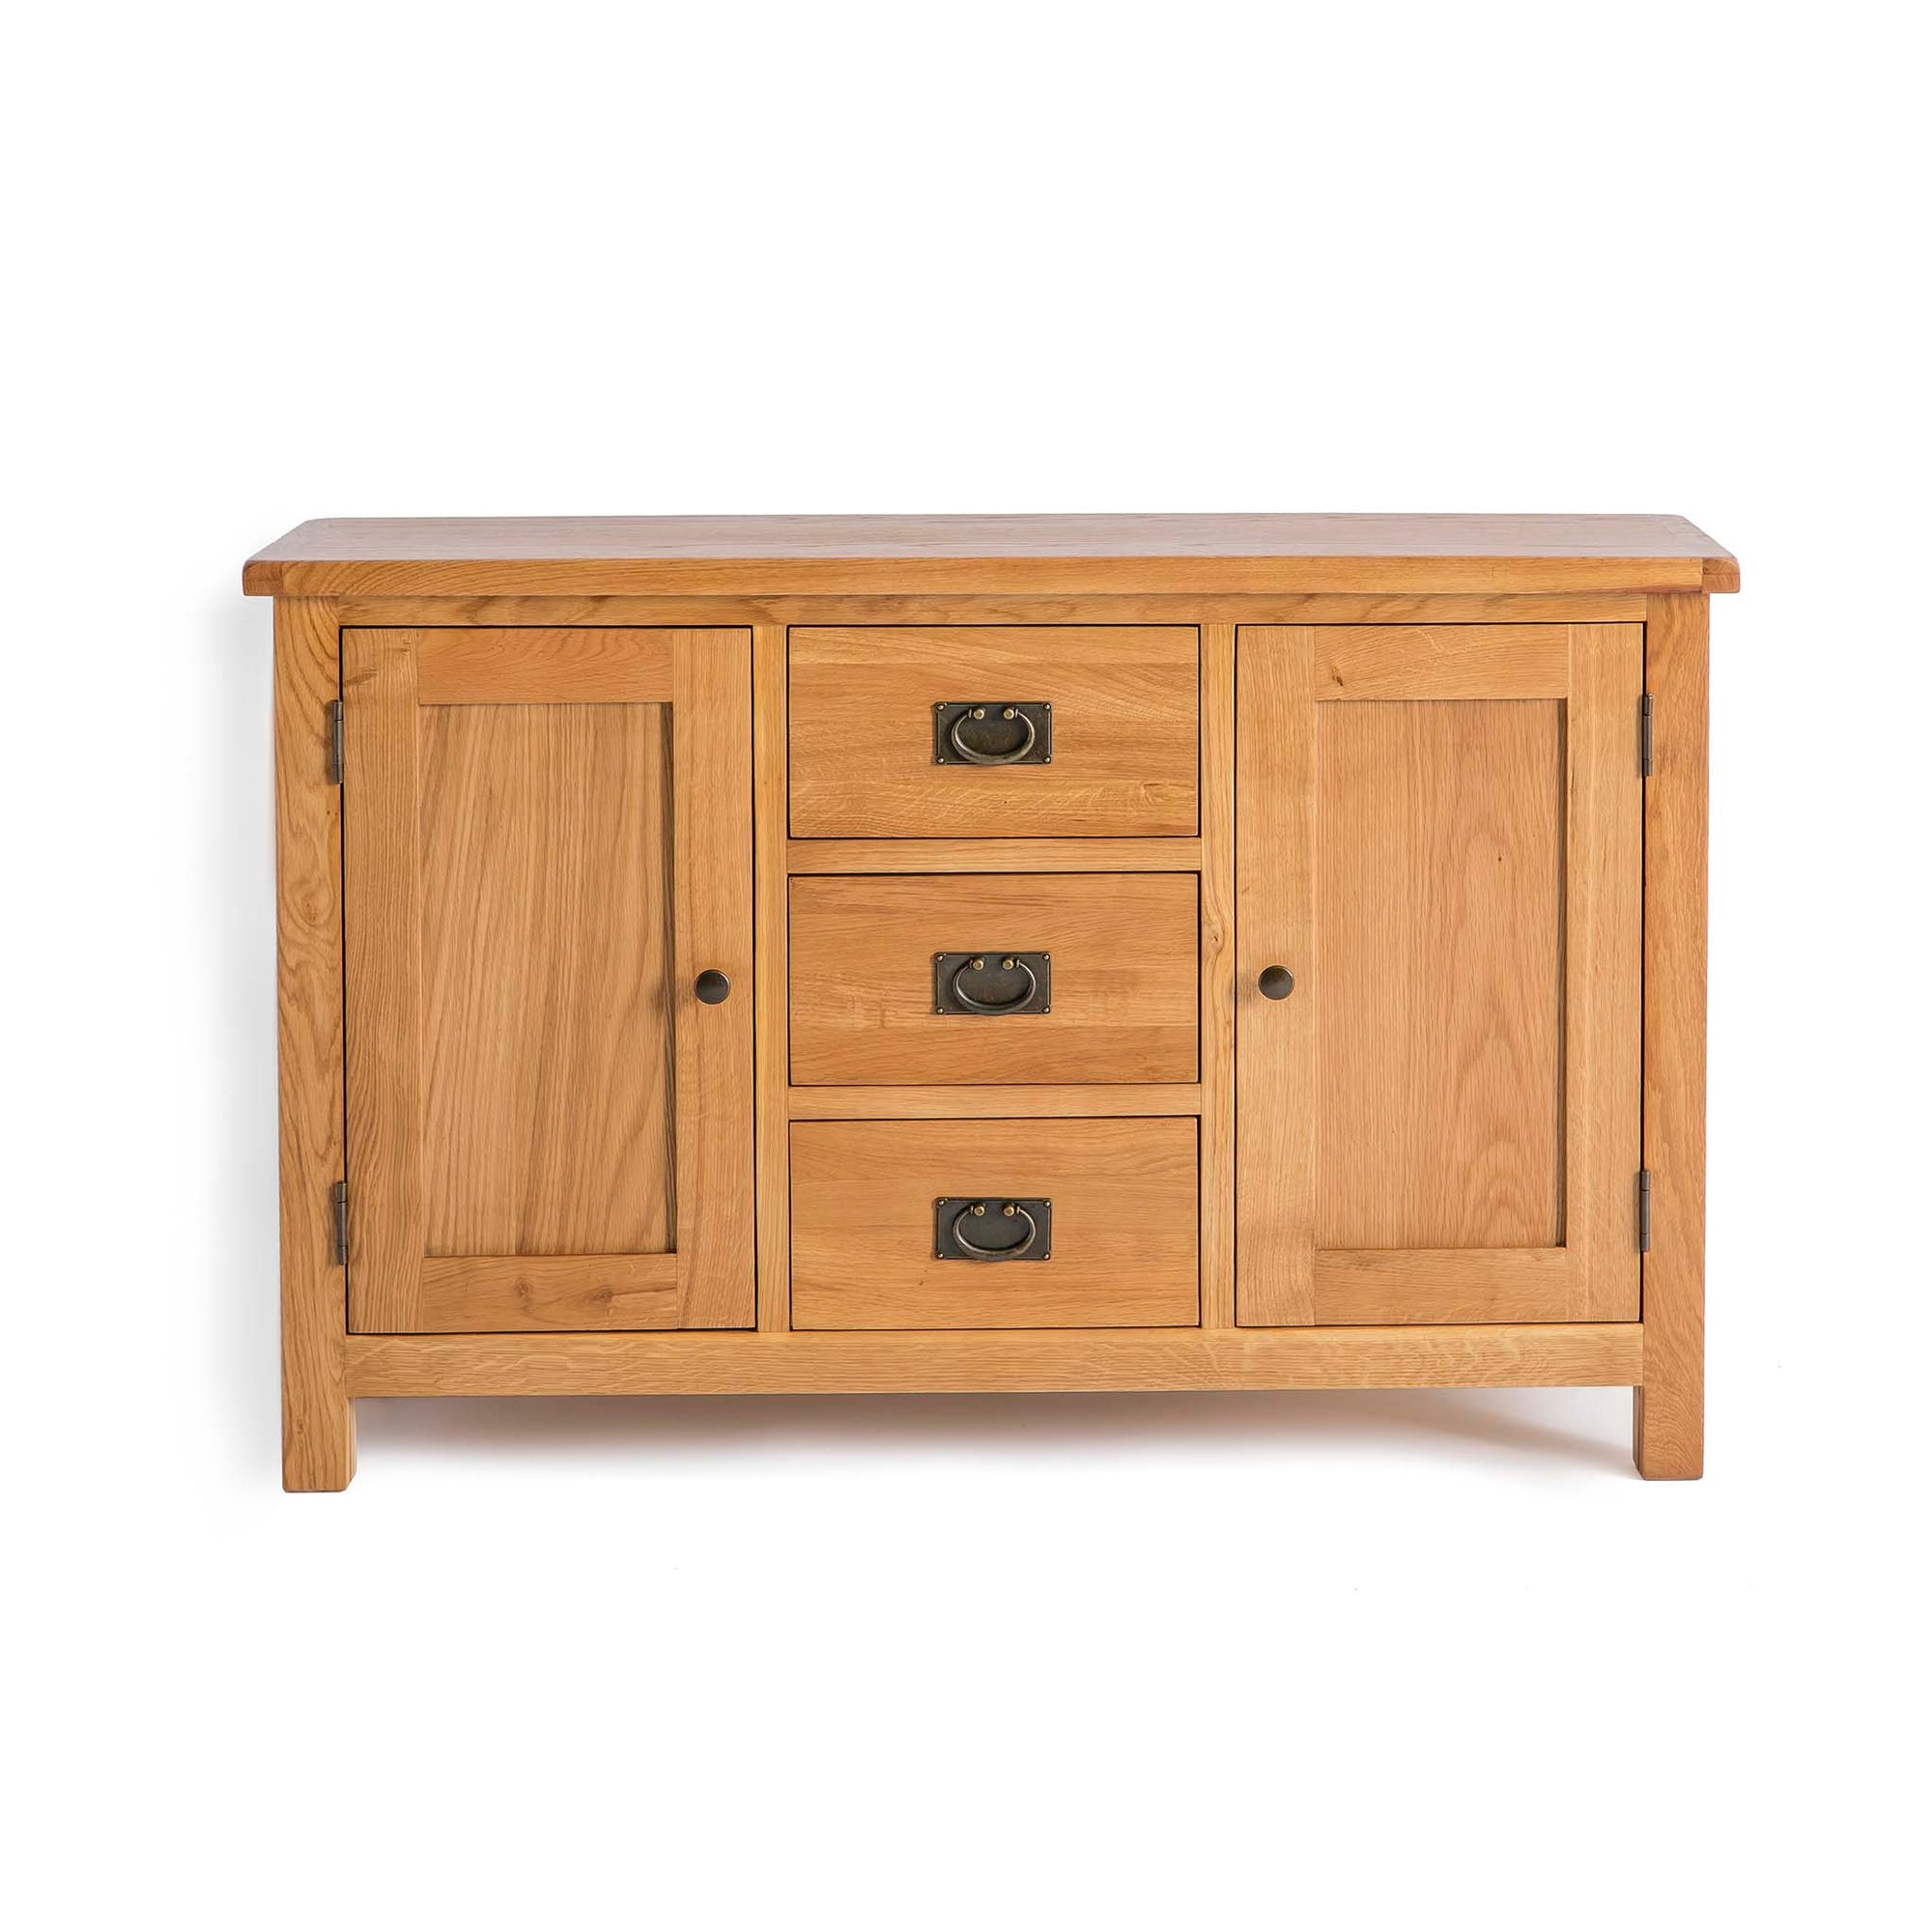 front view of the Surrey Oak 3 Drawer Sideboard by Roseland Furniture